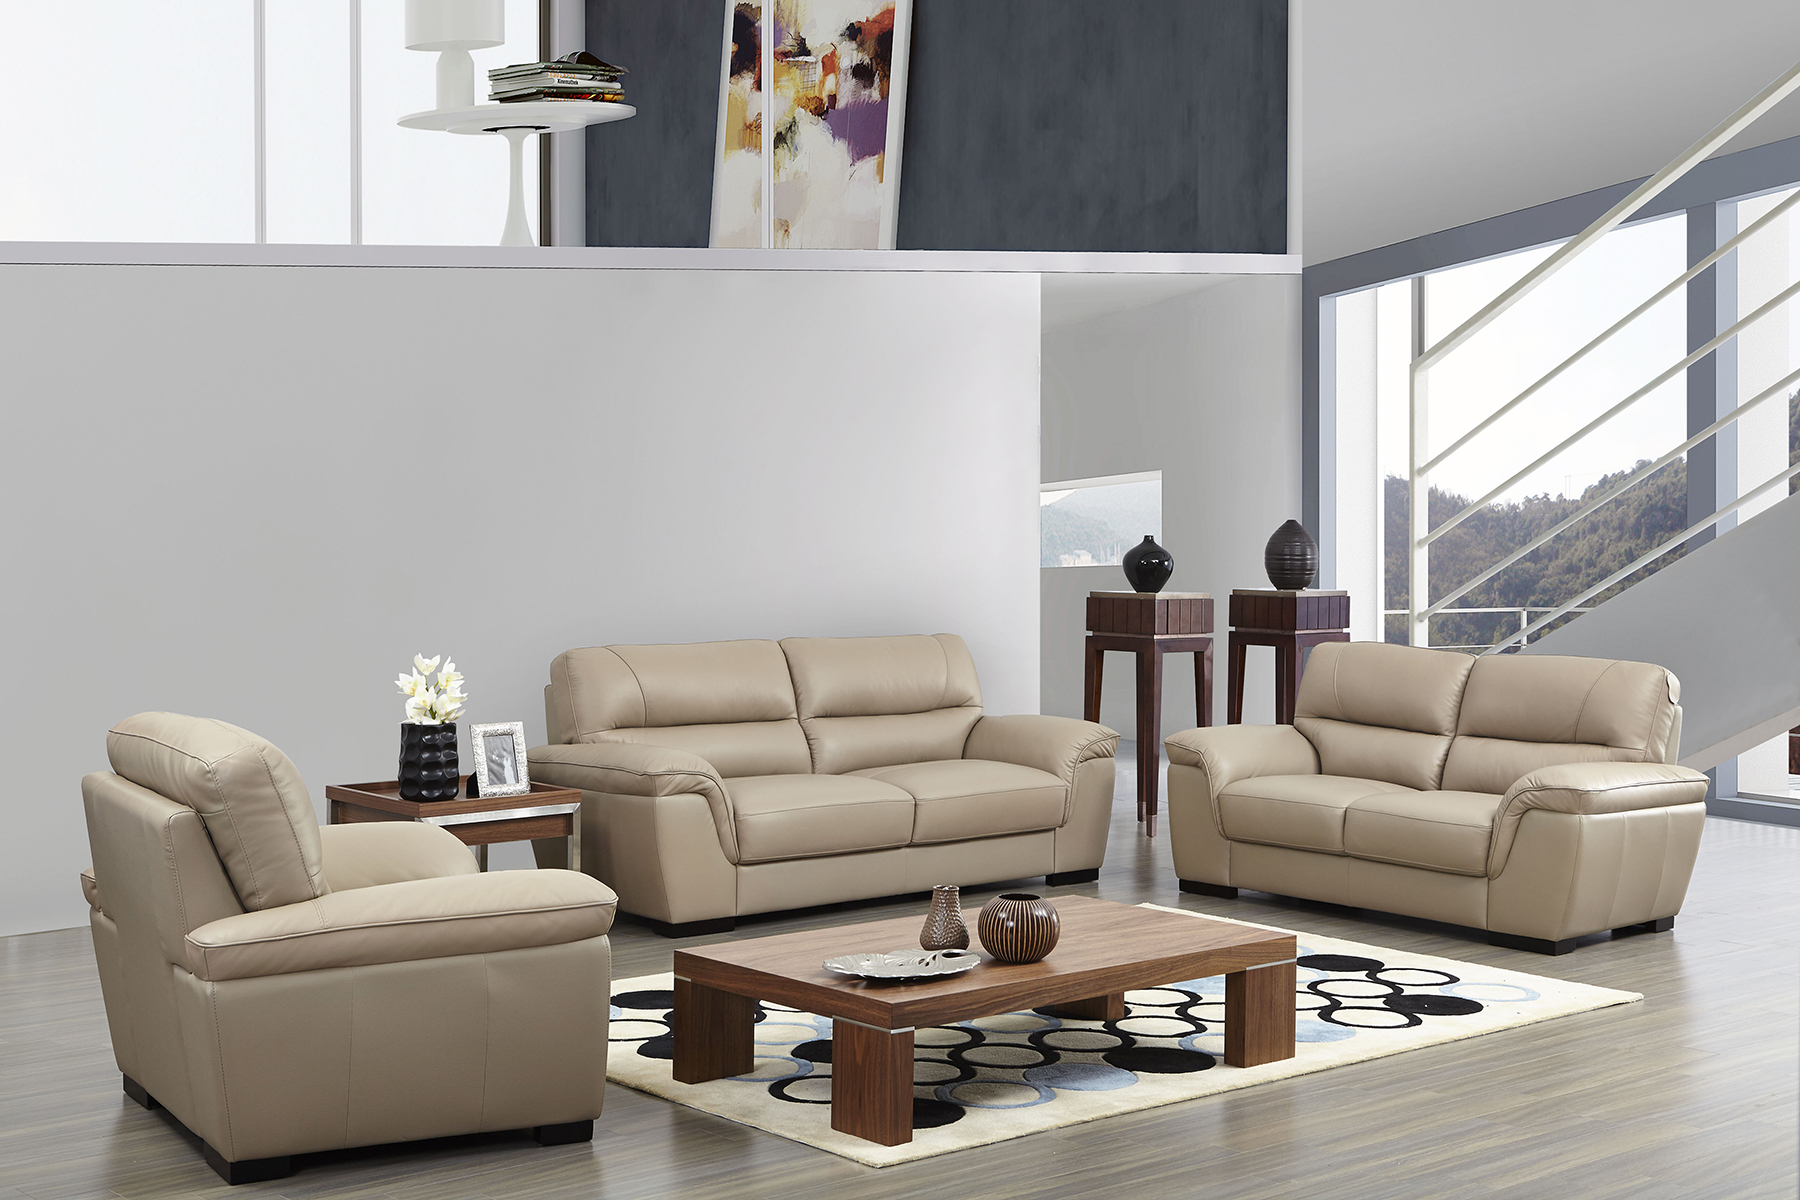 Contemporary Beige Leather Stylish Sofa Set With Wooden Legs San Jose California Esf8052